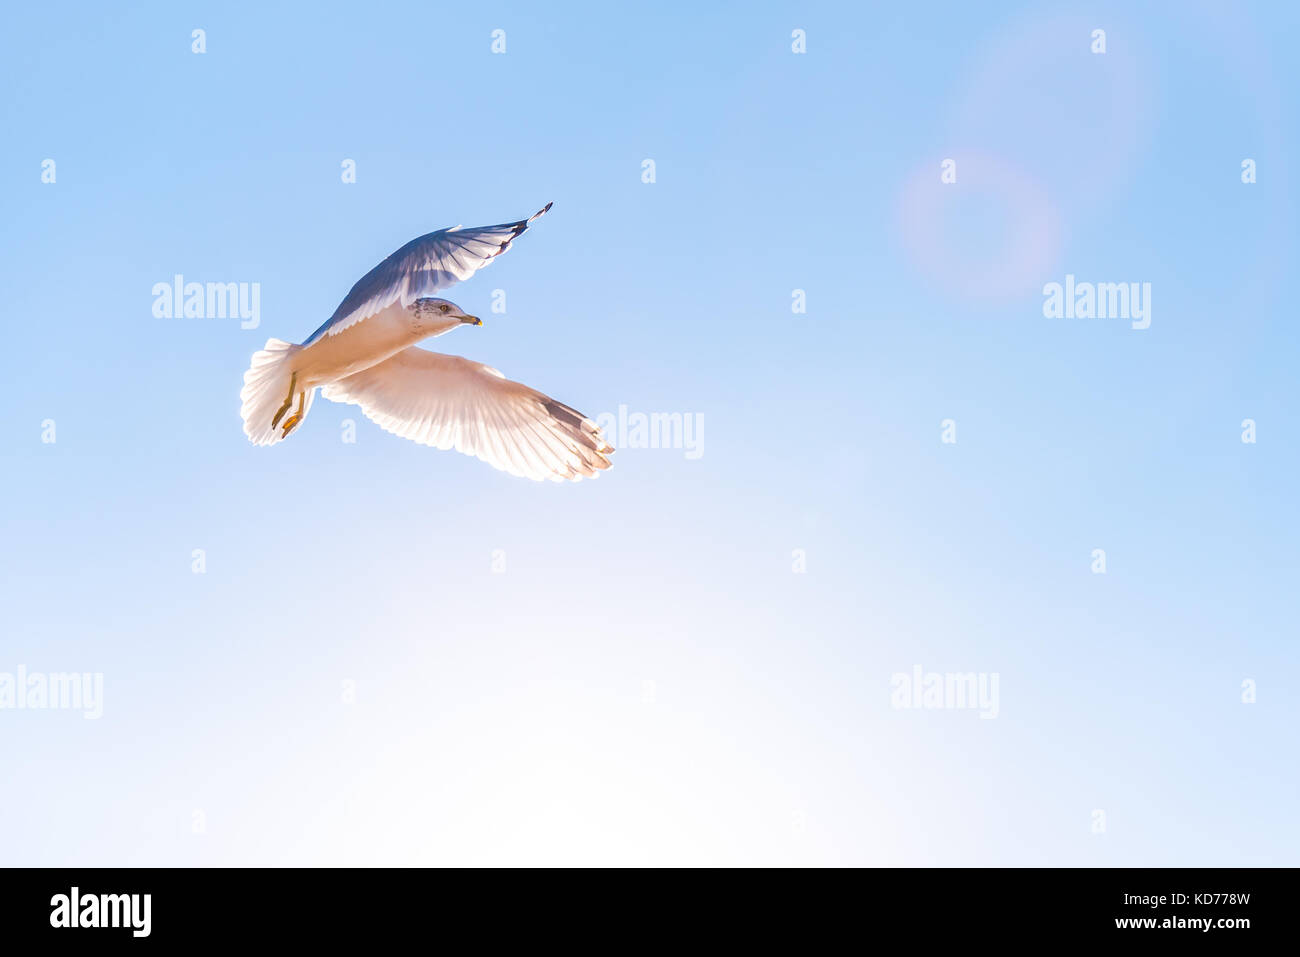 Seagull in flight with sunshine and blue sky - Stock Image